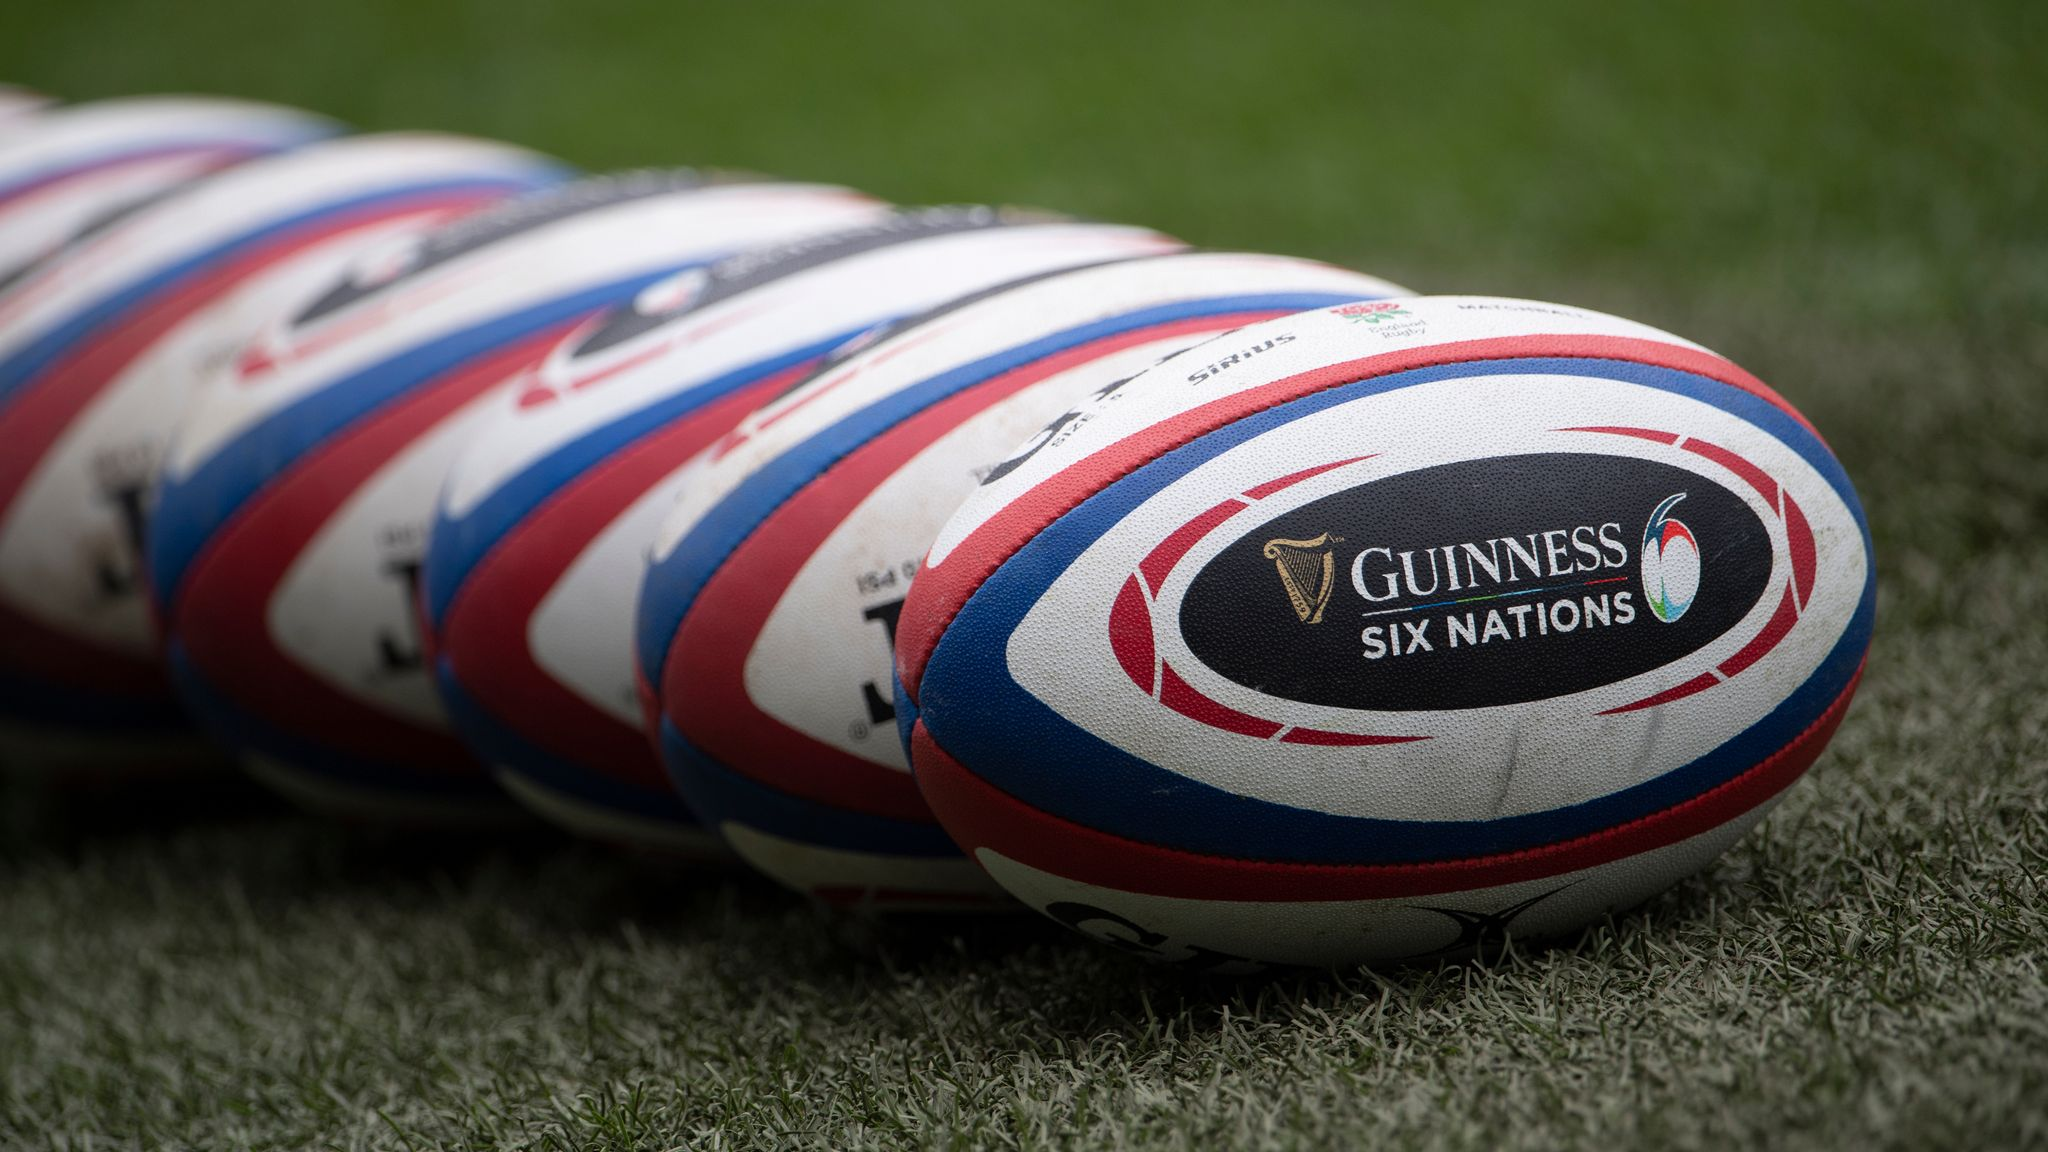 Coronavirus: What next in Six Nations after fixture postponements ...